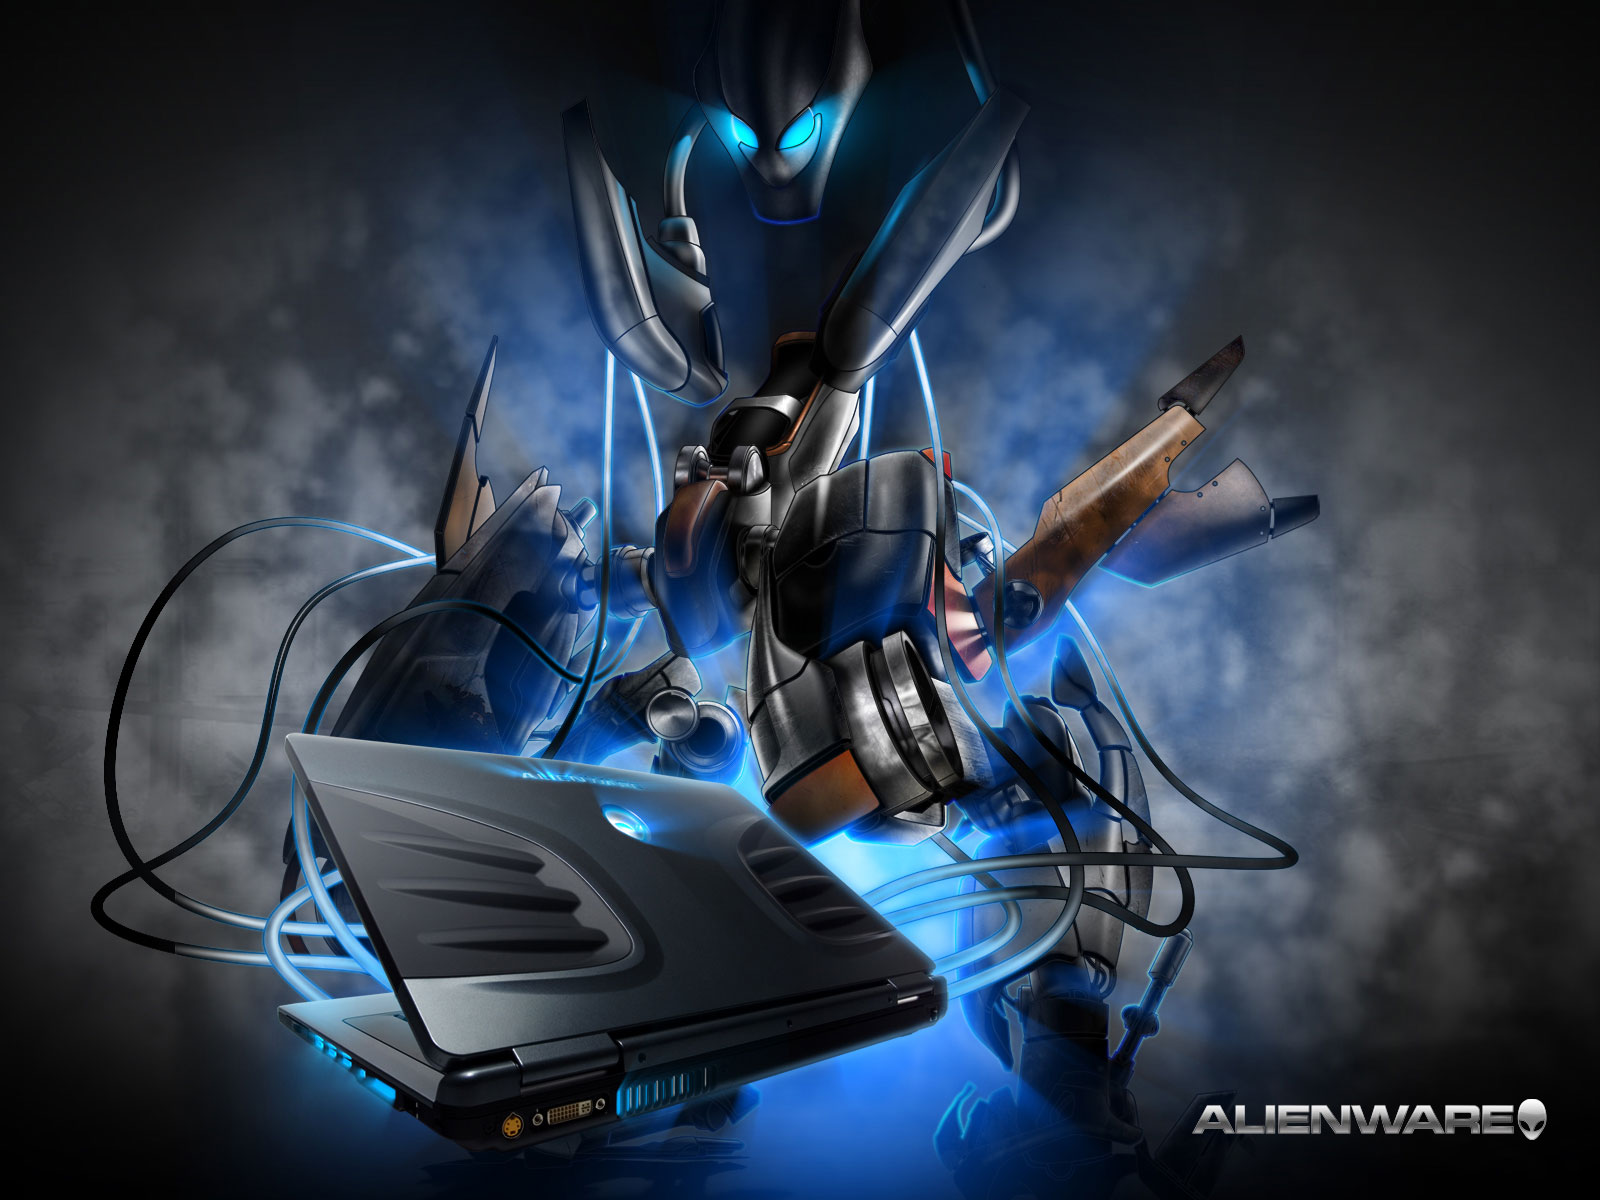 Computer Wallpapers: Alienware Wallpapers